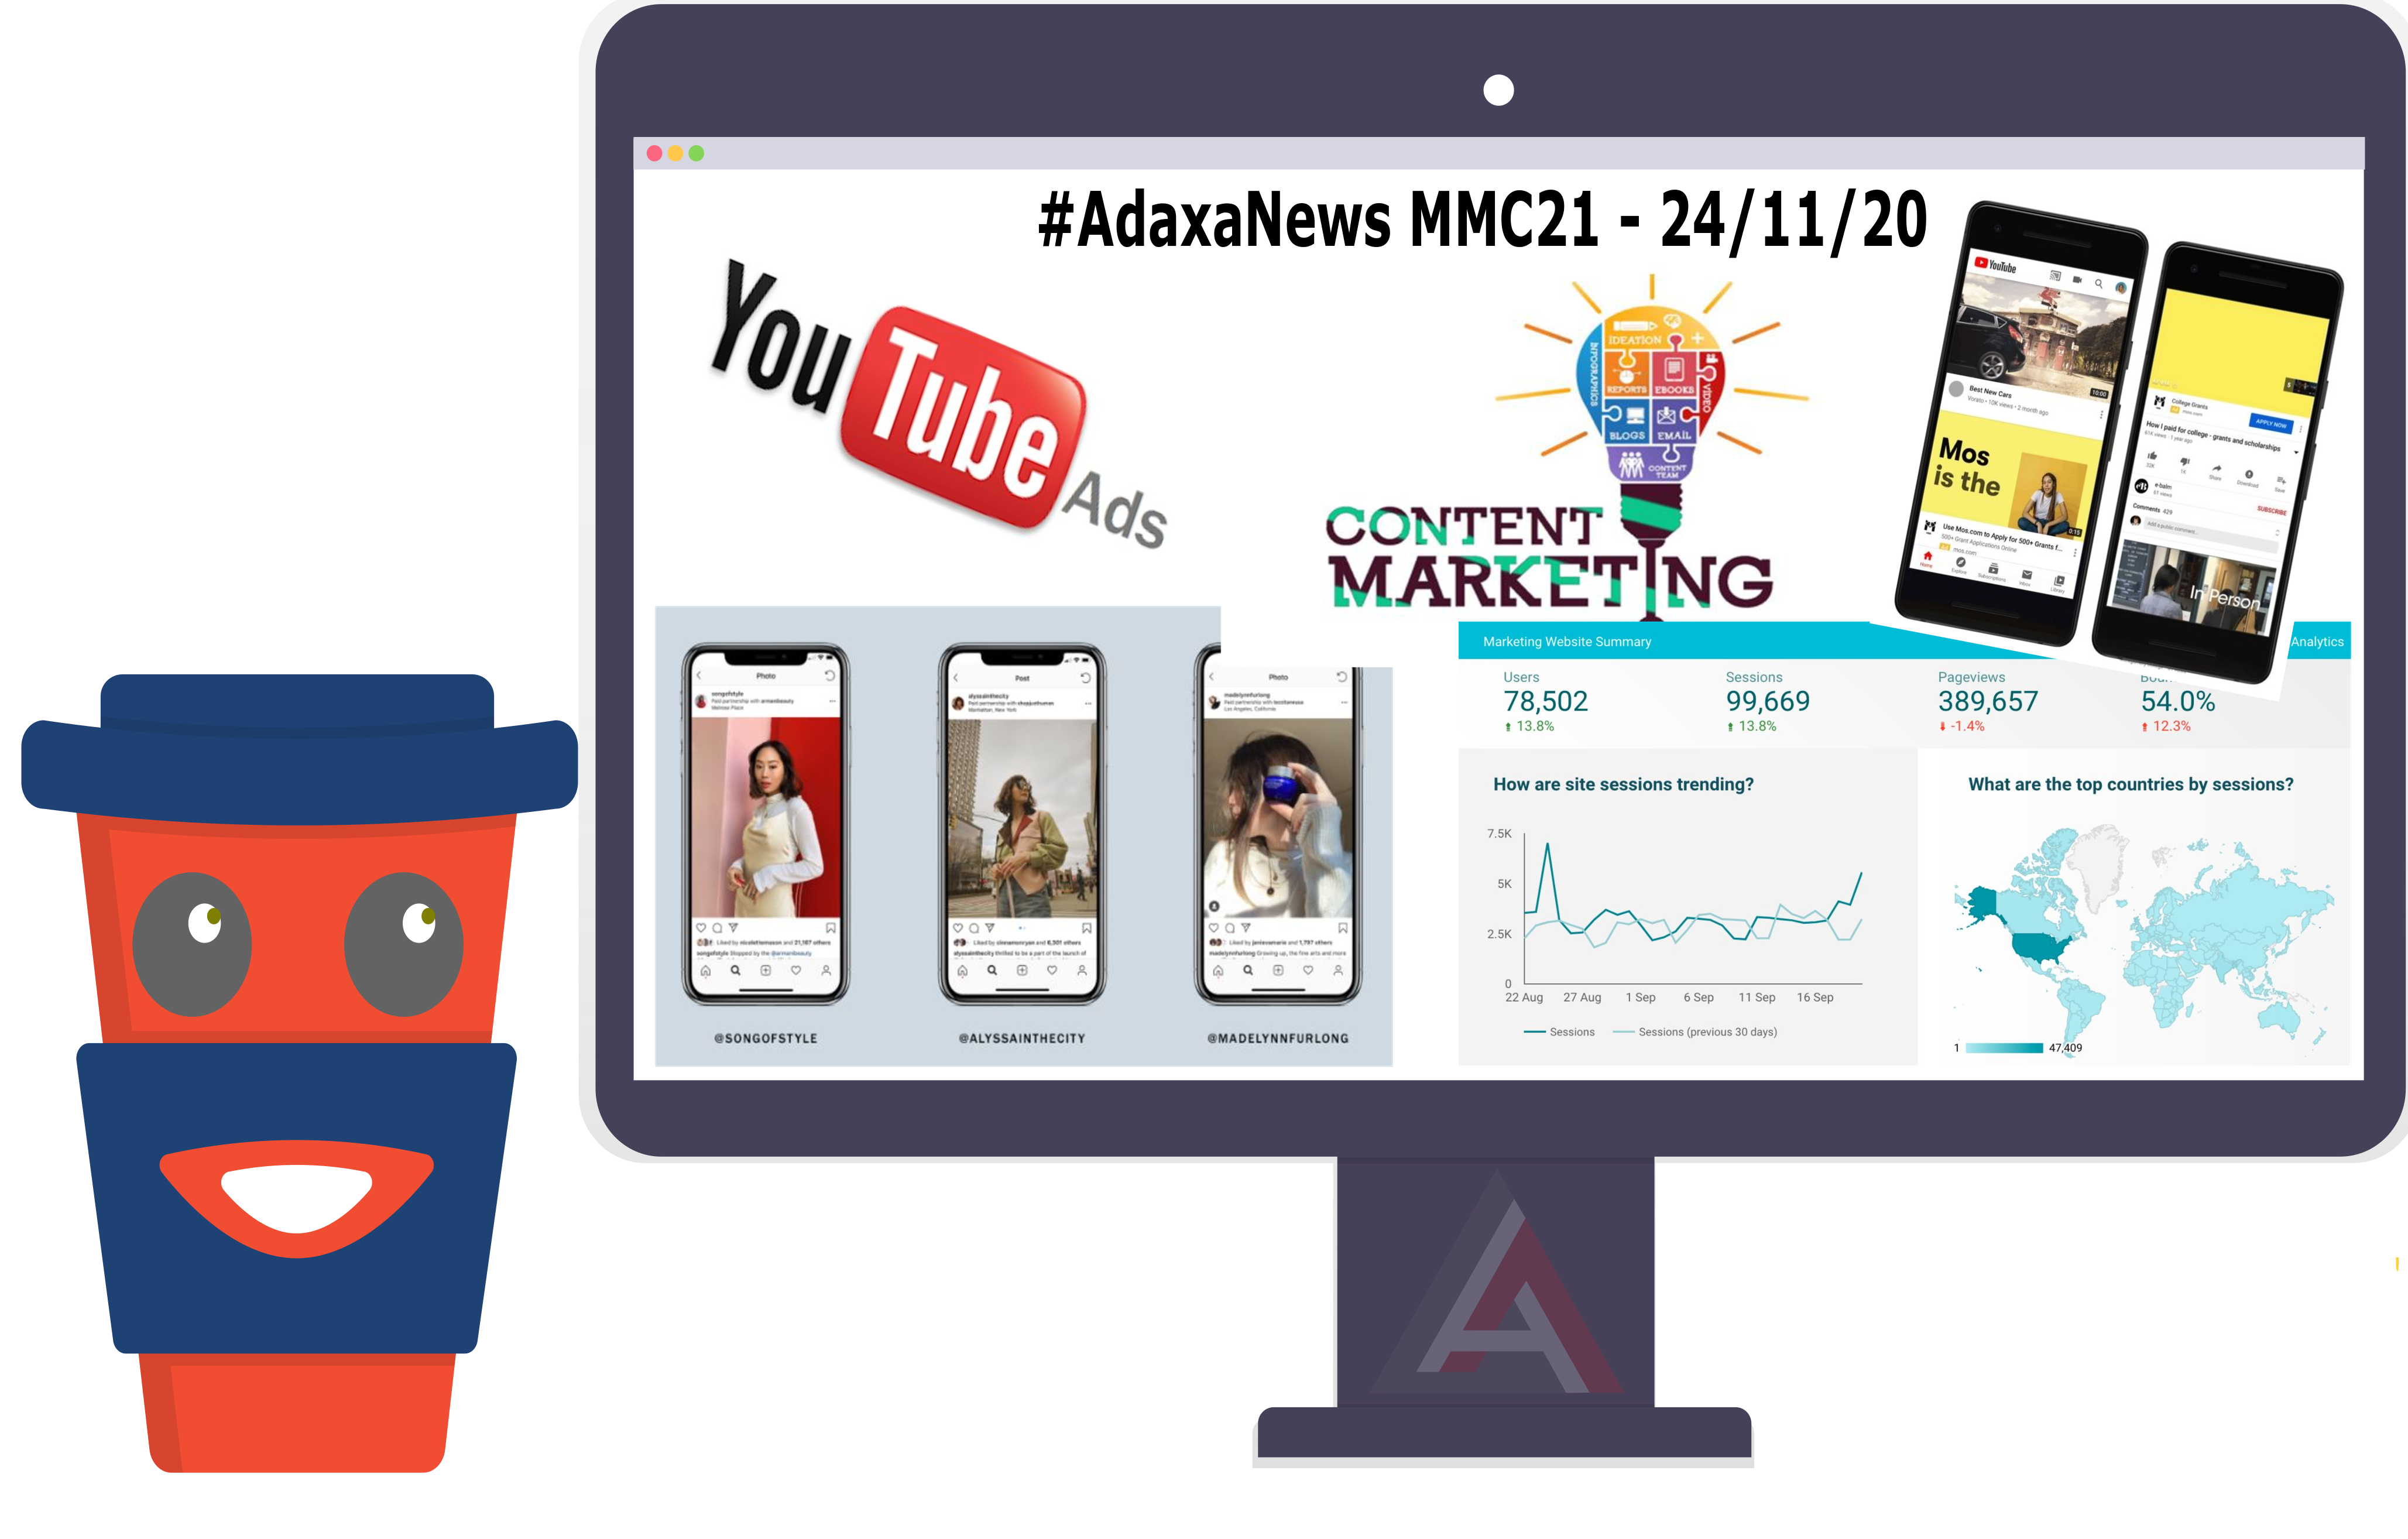 YouTubeAds, Instagram Branded Content Ads, Content Marketing Trends & More – [MMC-21]